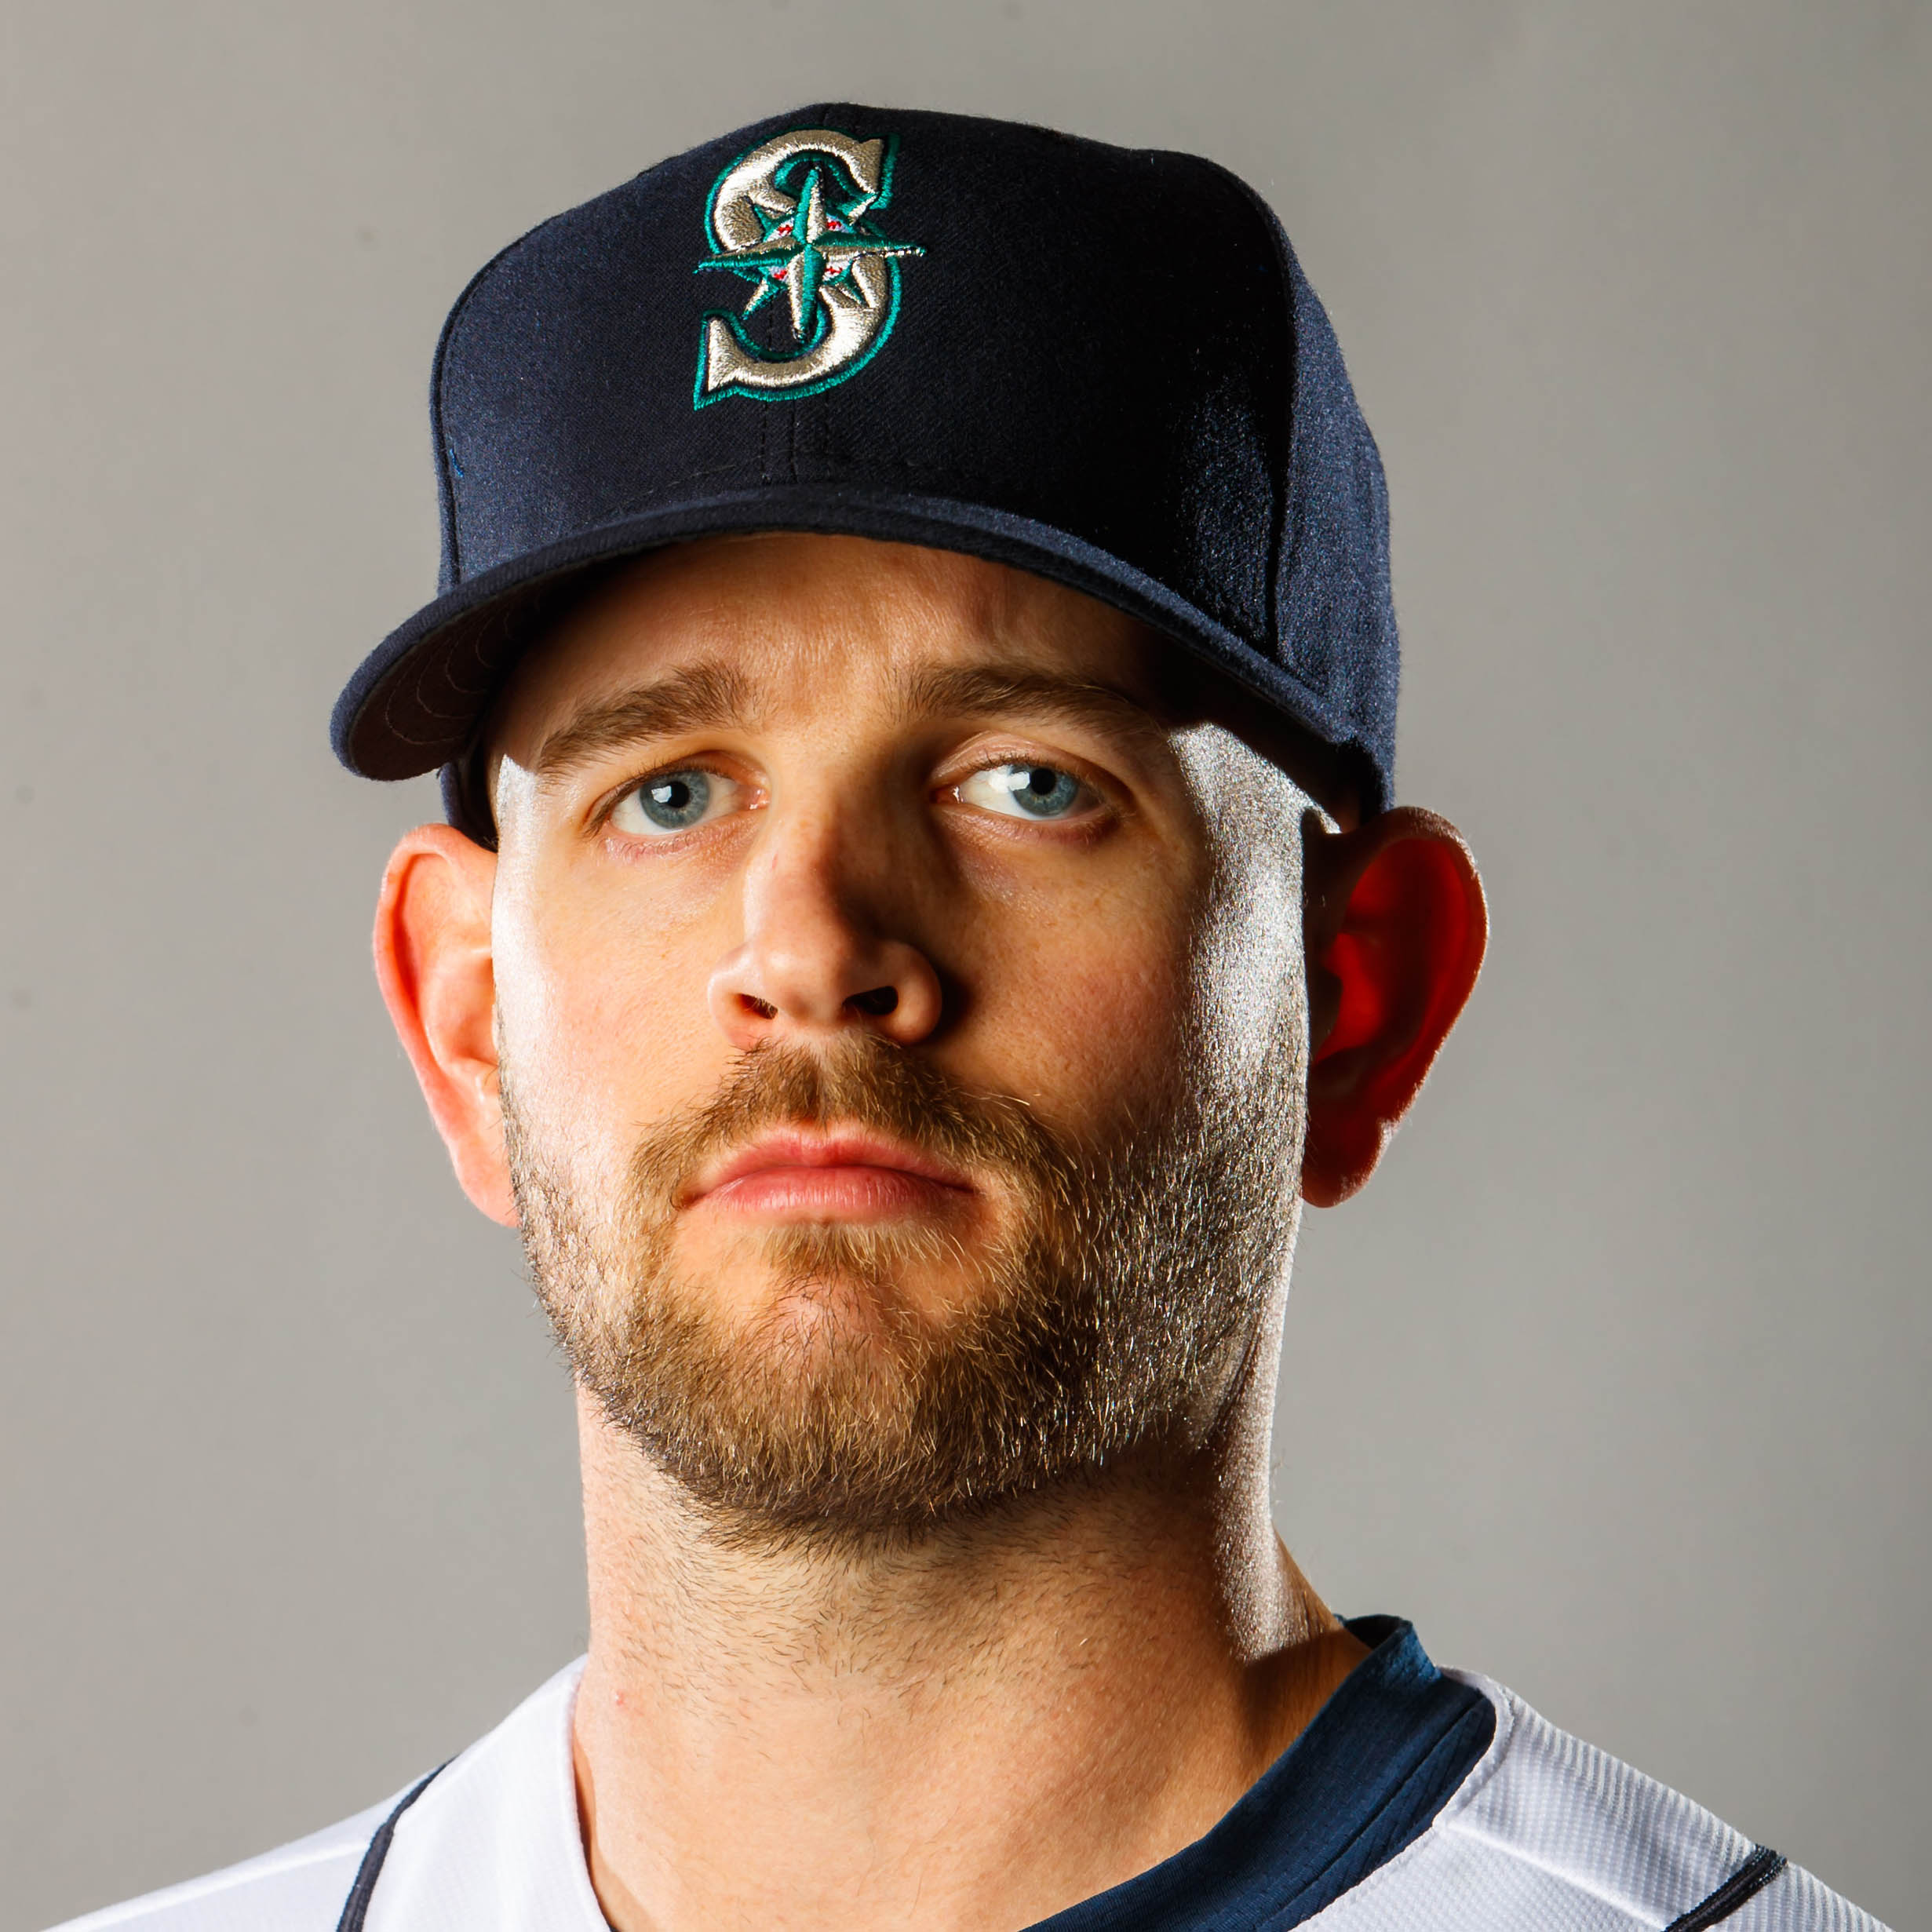 James Paxton (L) Headshot